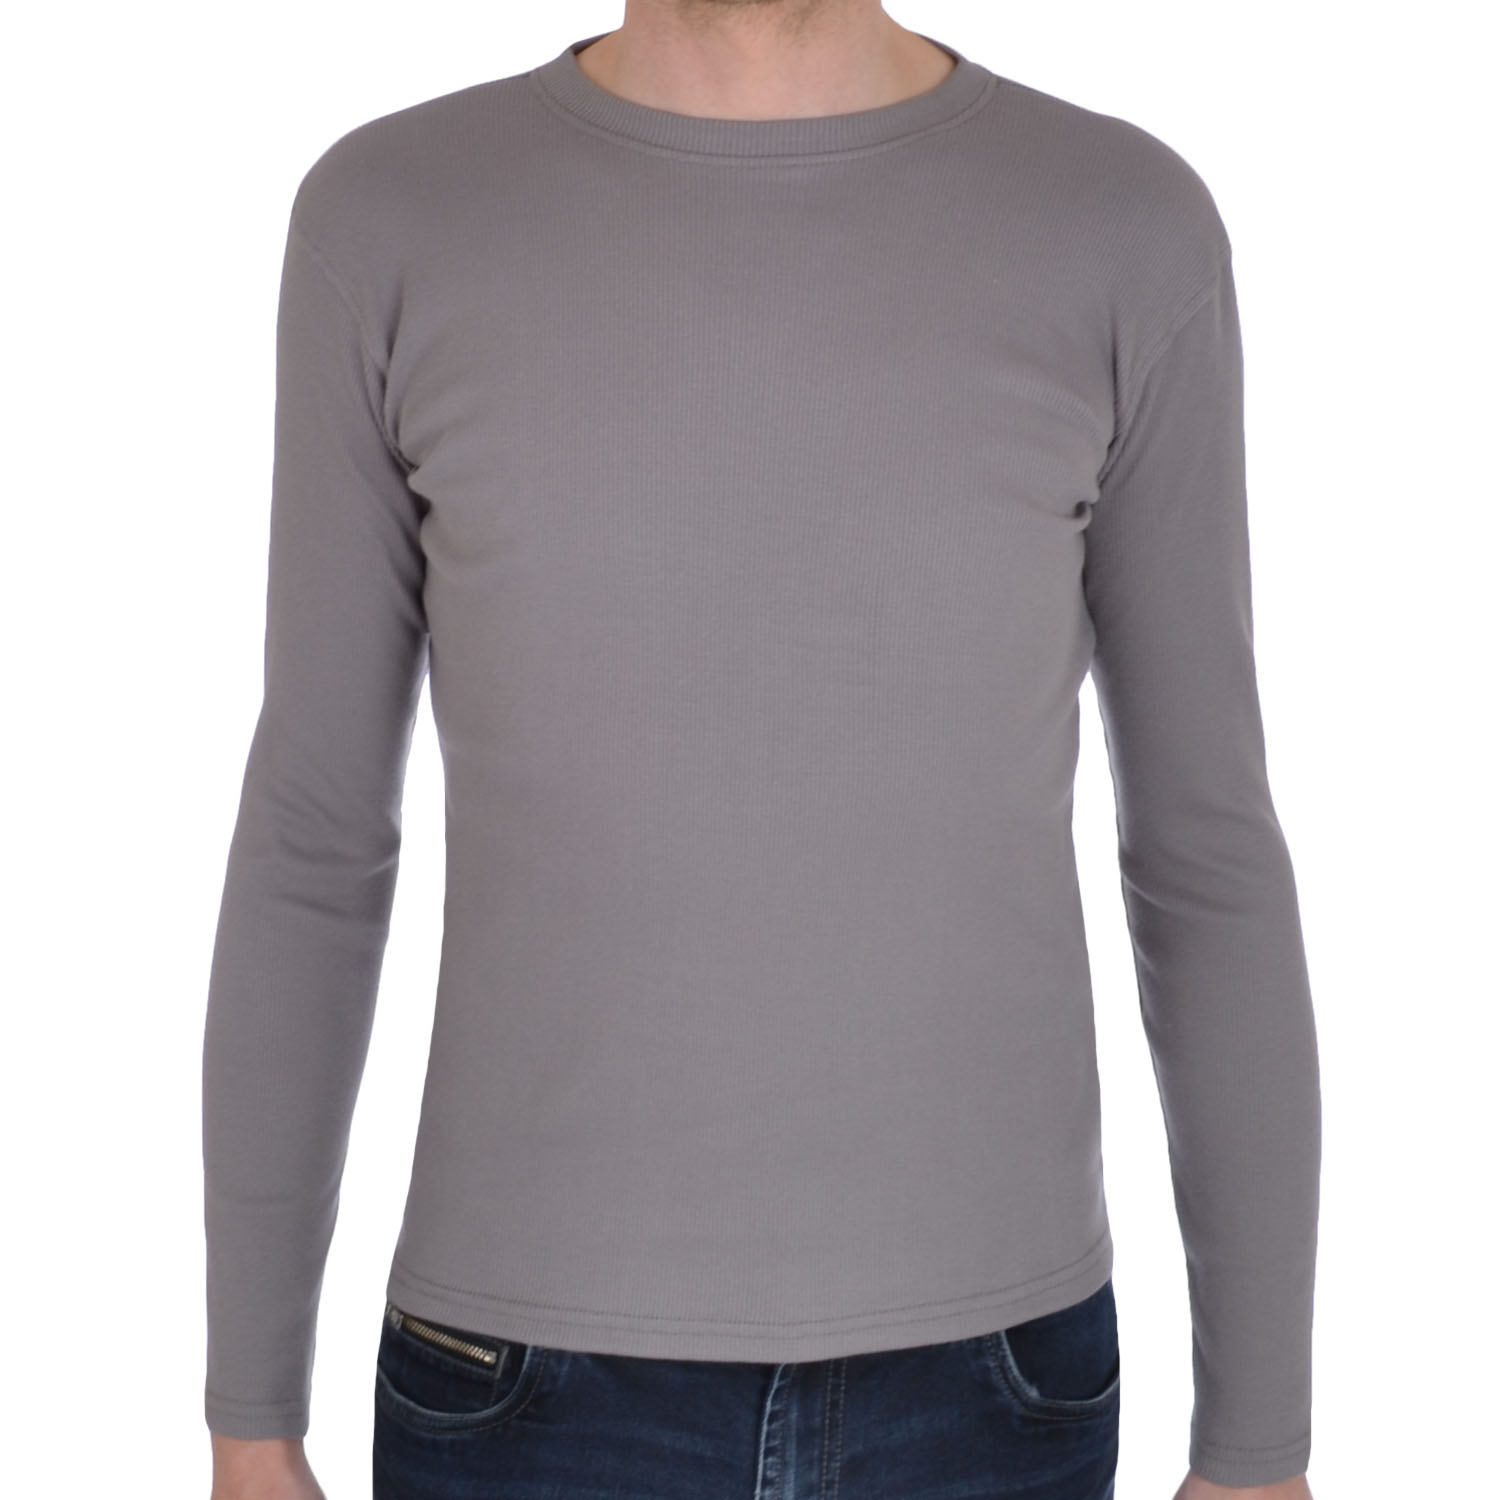 Long-Sleeve Tee - A touch of spandex makes our tees fit better, look neater and keep their shape. Approx. 26